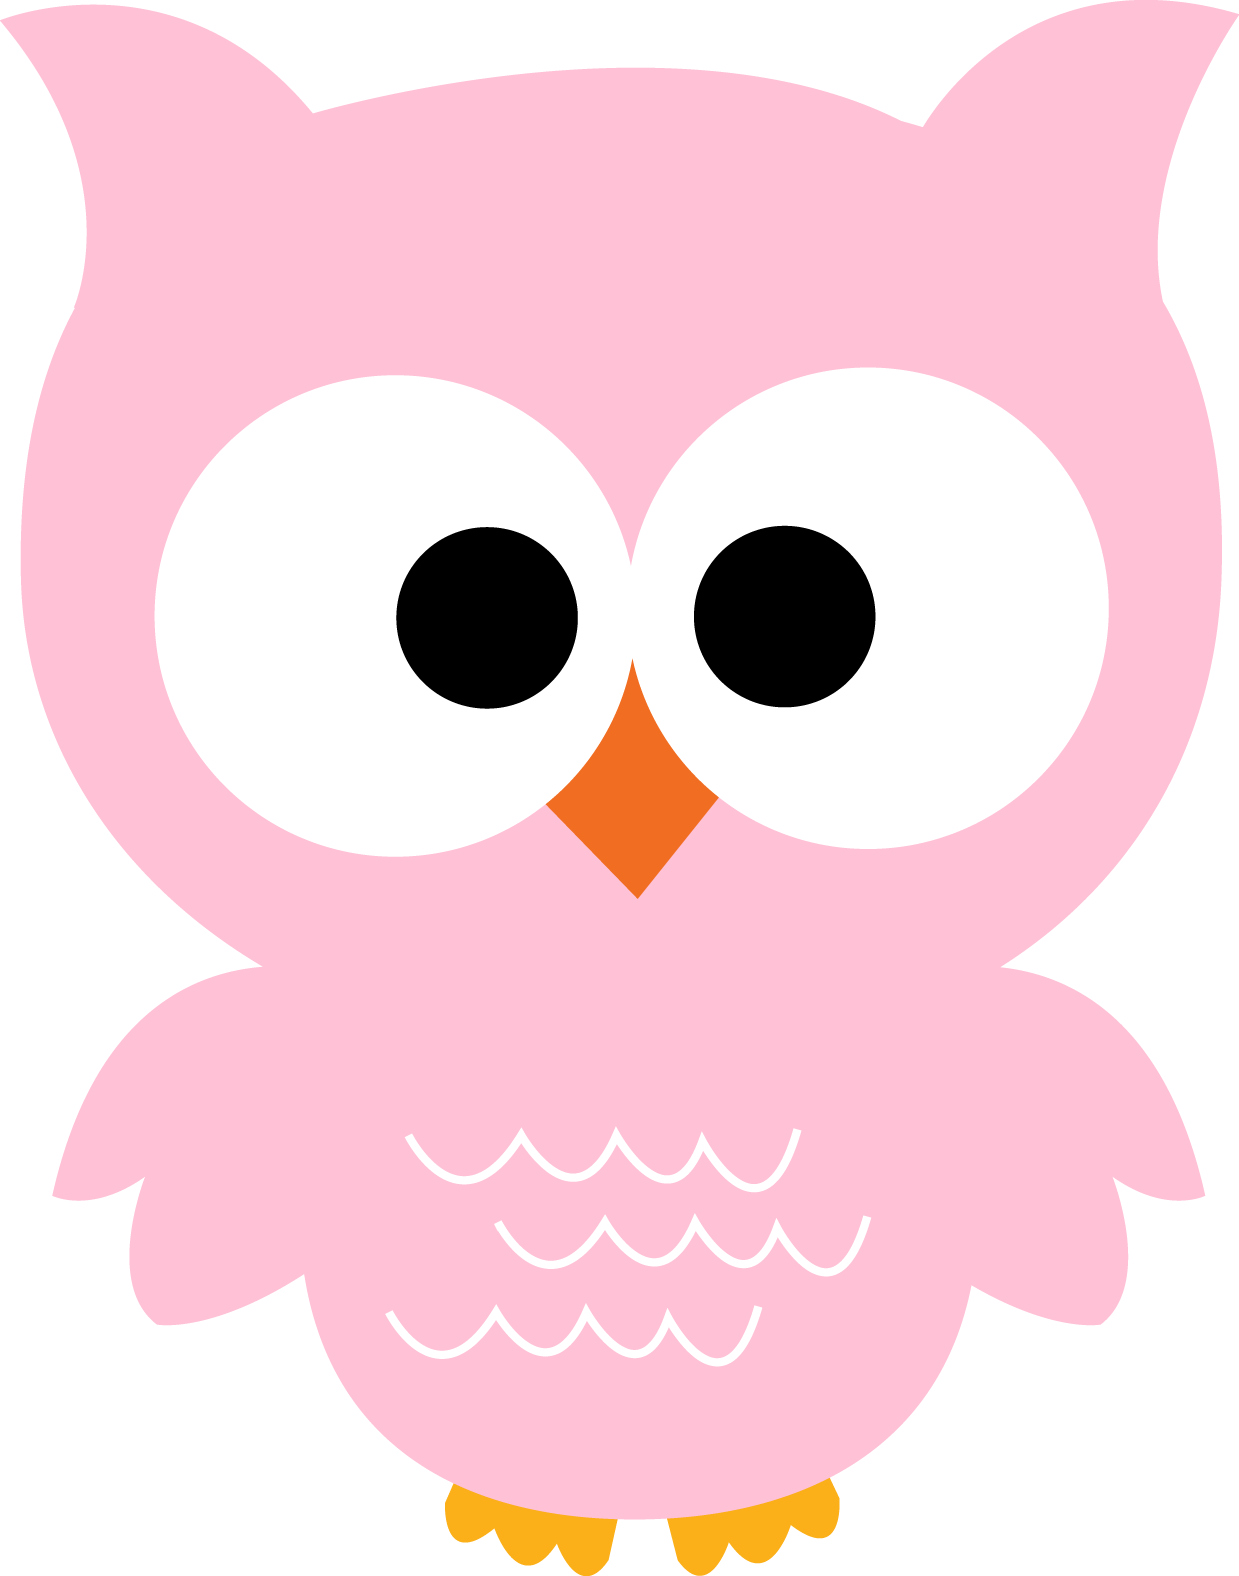 20 Adorable Owl Printables Ohh These Are So Cute So Many Colors To Choose From Too Kreativ Basteln Kreative Ideen